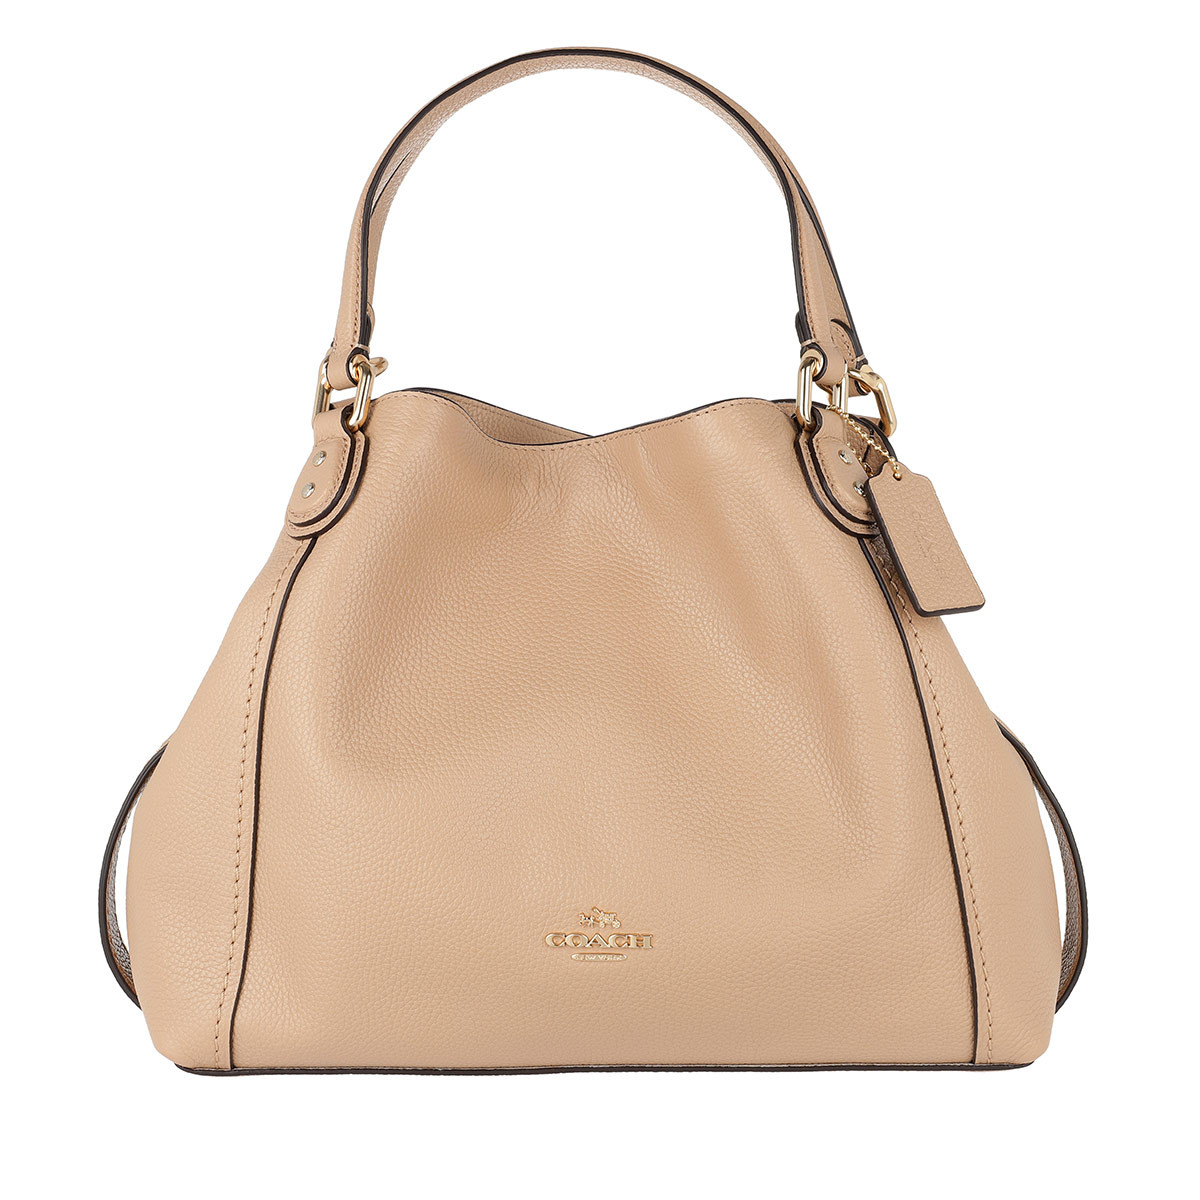 Coach Satchel Bag - Polished Leather Edie 28 Shoulder Bag Beechwood - in beige - für Damen